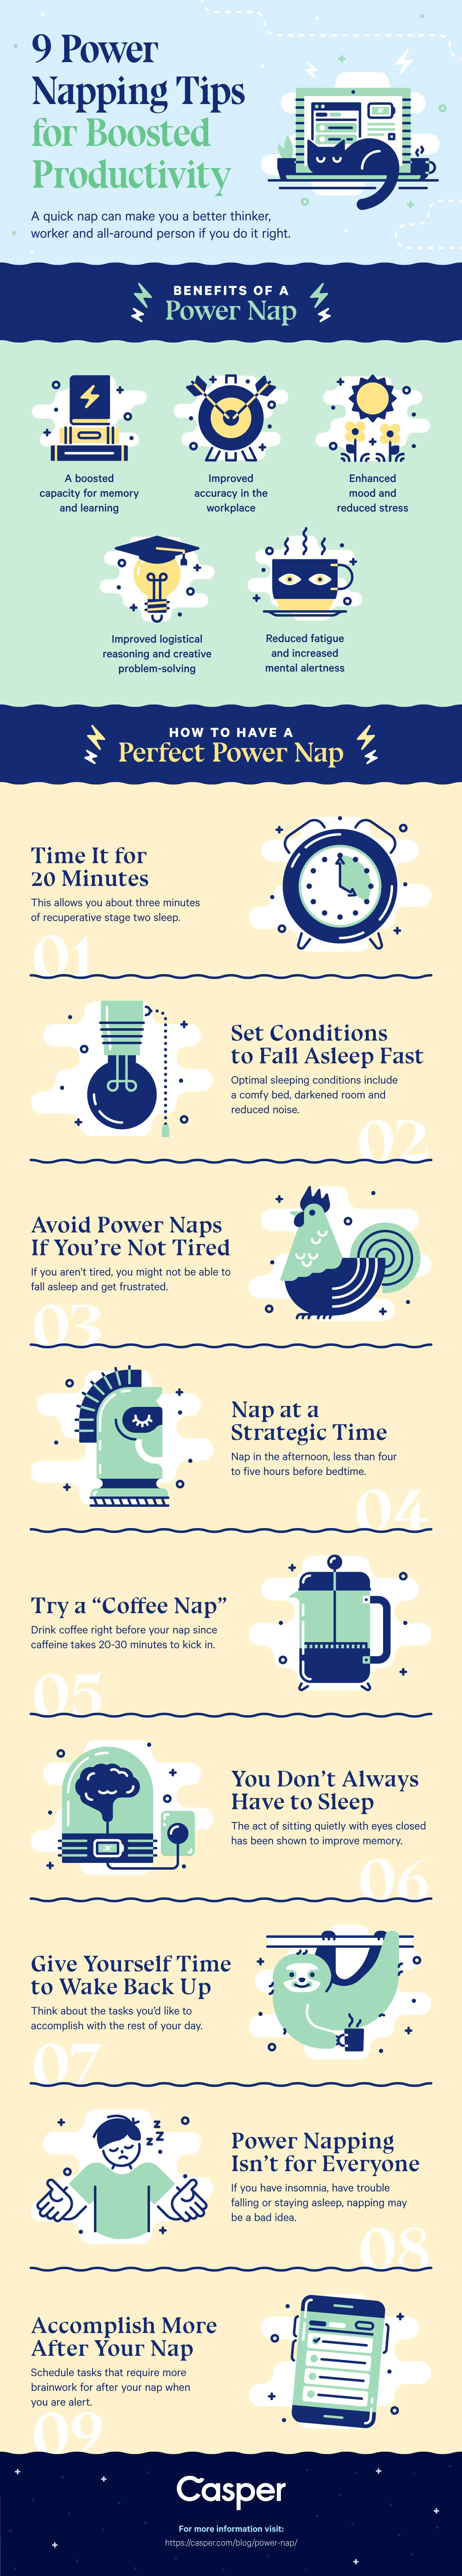 5 Tips to Supercharge Your Power Nap Infographic